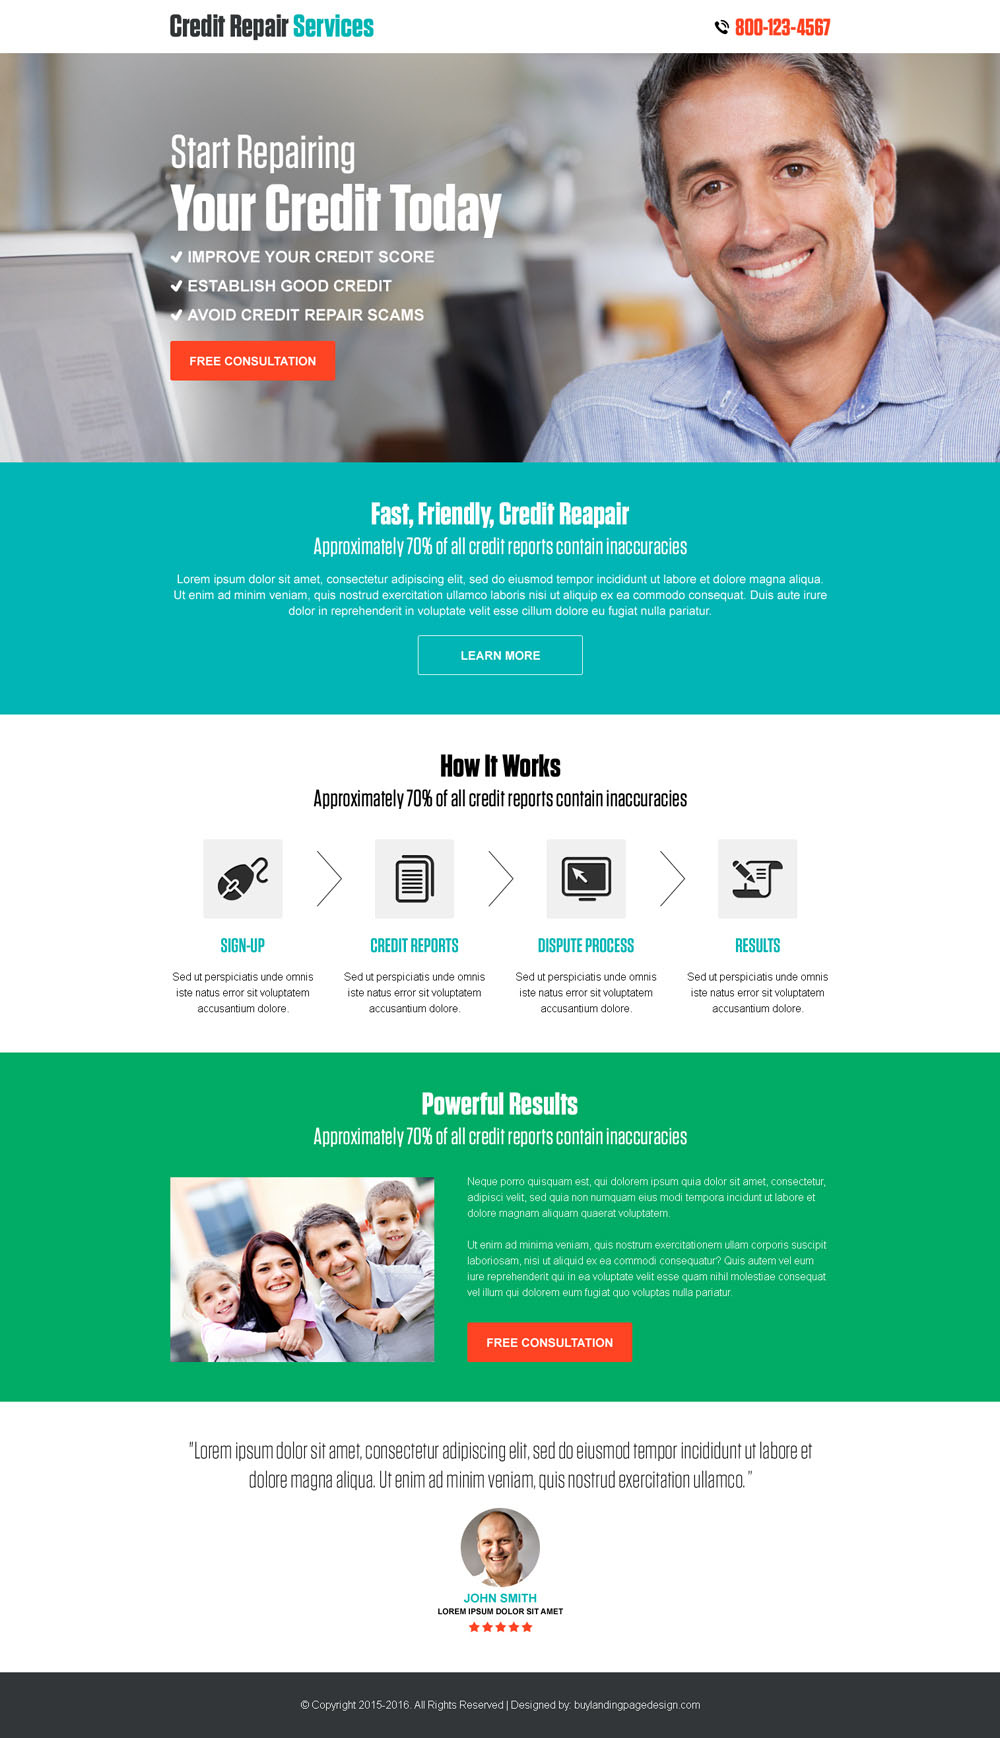 credit-repair-service-free-consultation-call-to-action-converting-lanidng-page-design-026